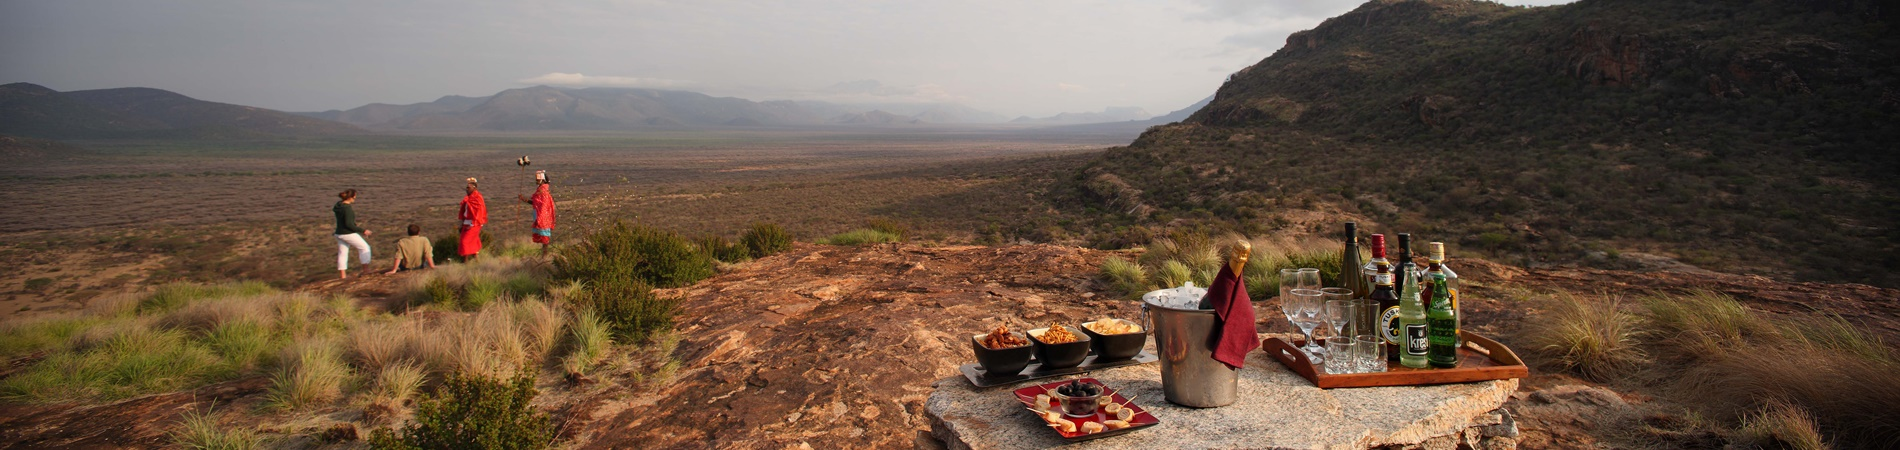 Saruni Samburu – KEN – Sundowners2